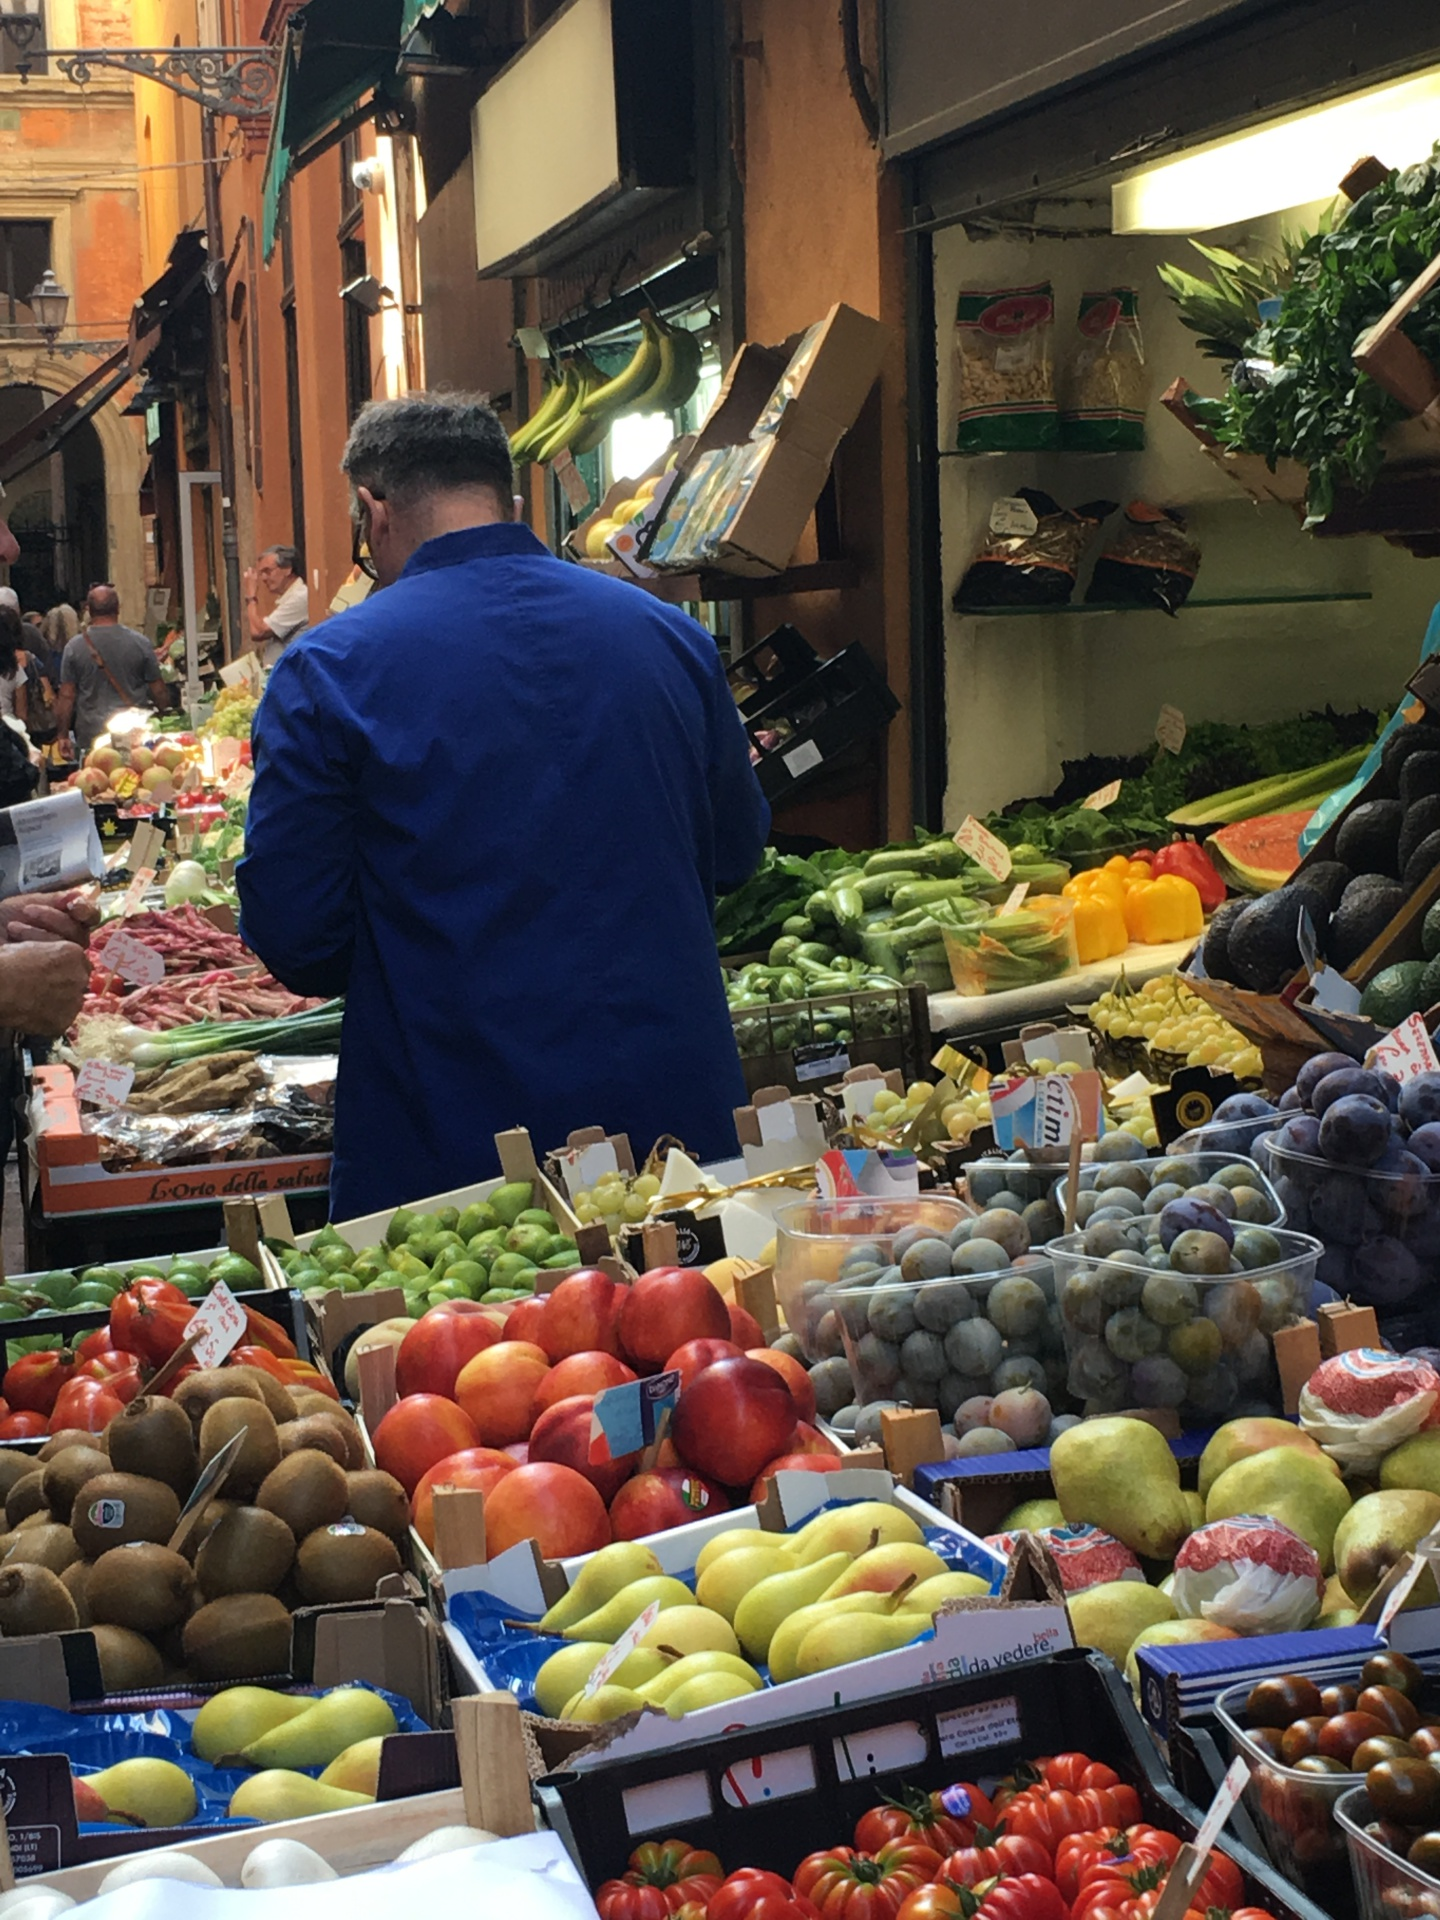 Six Things You Should Know About Italian Markets